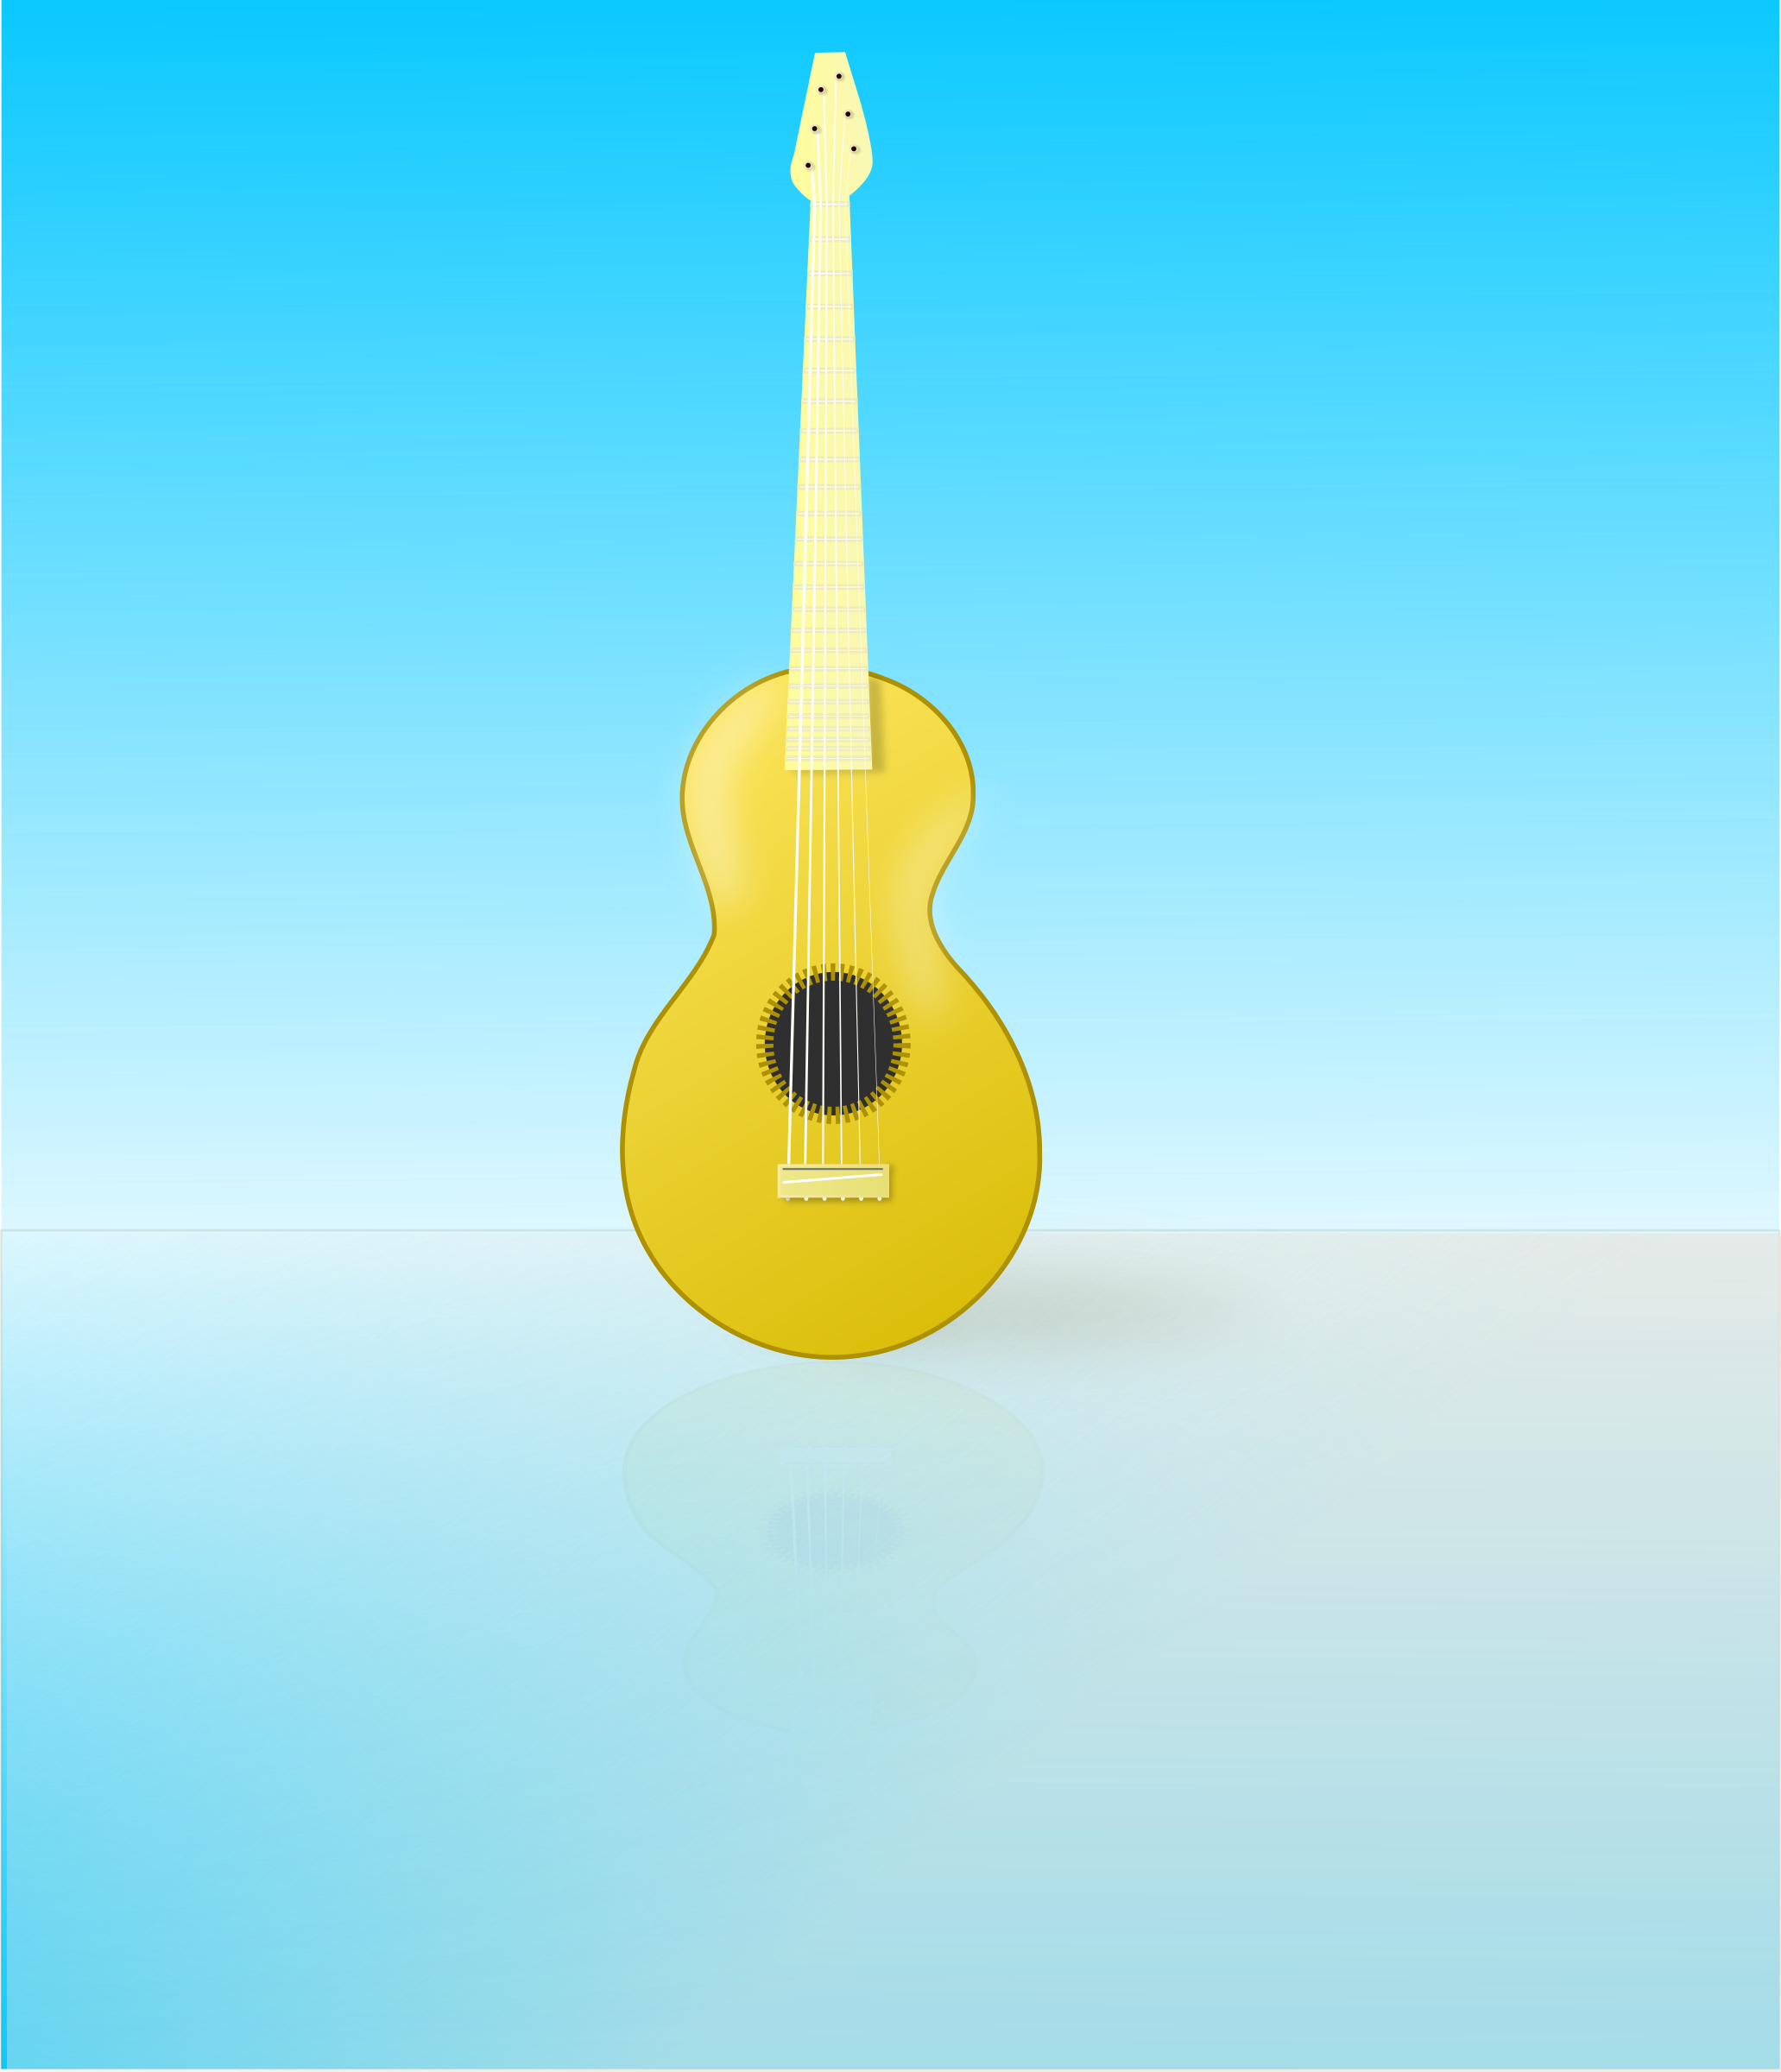 guitar by me4tanik